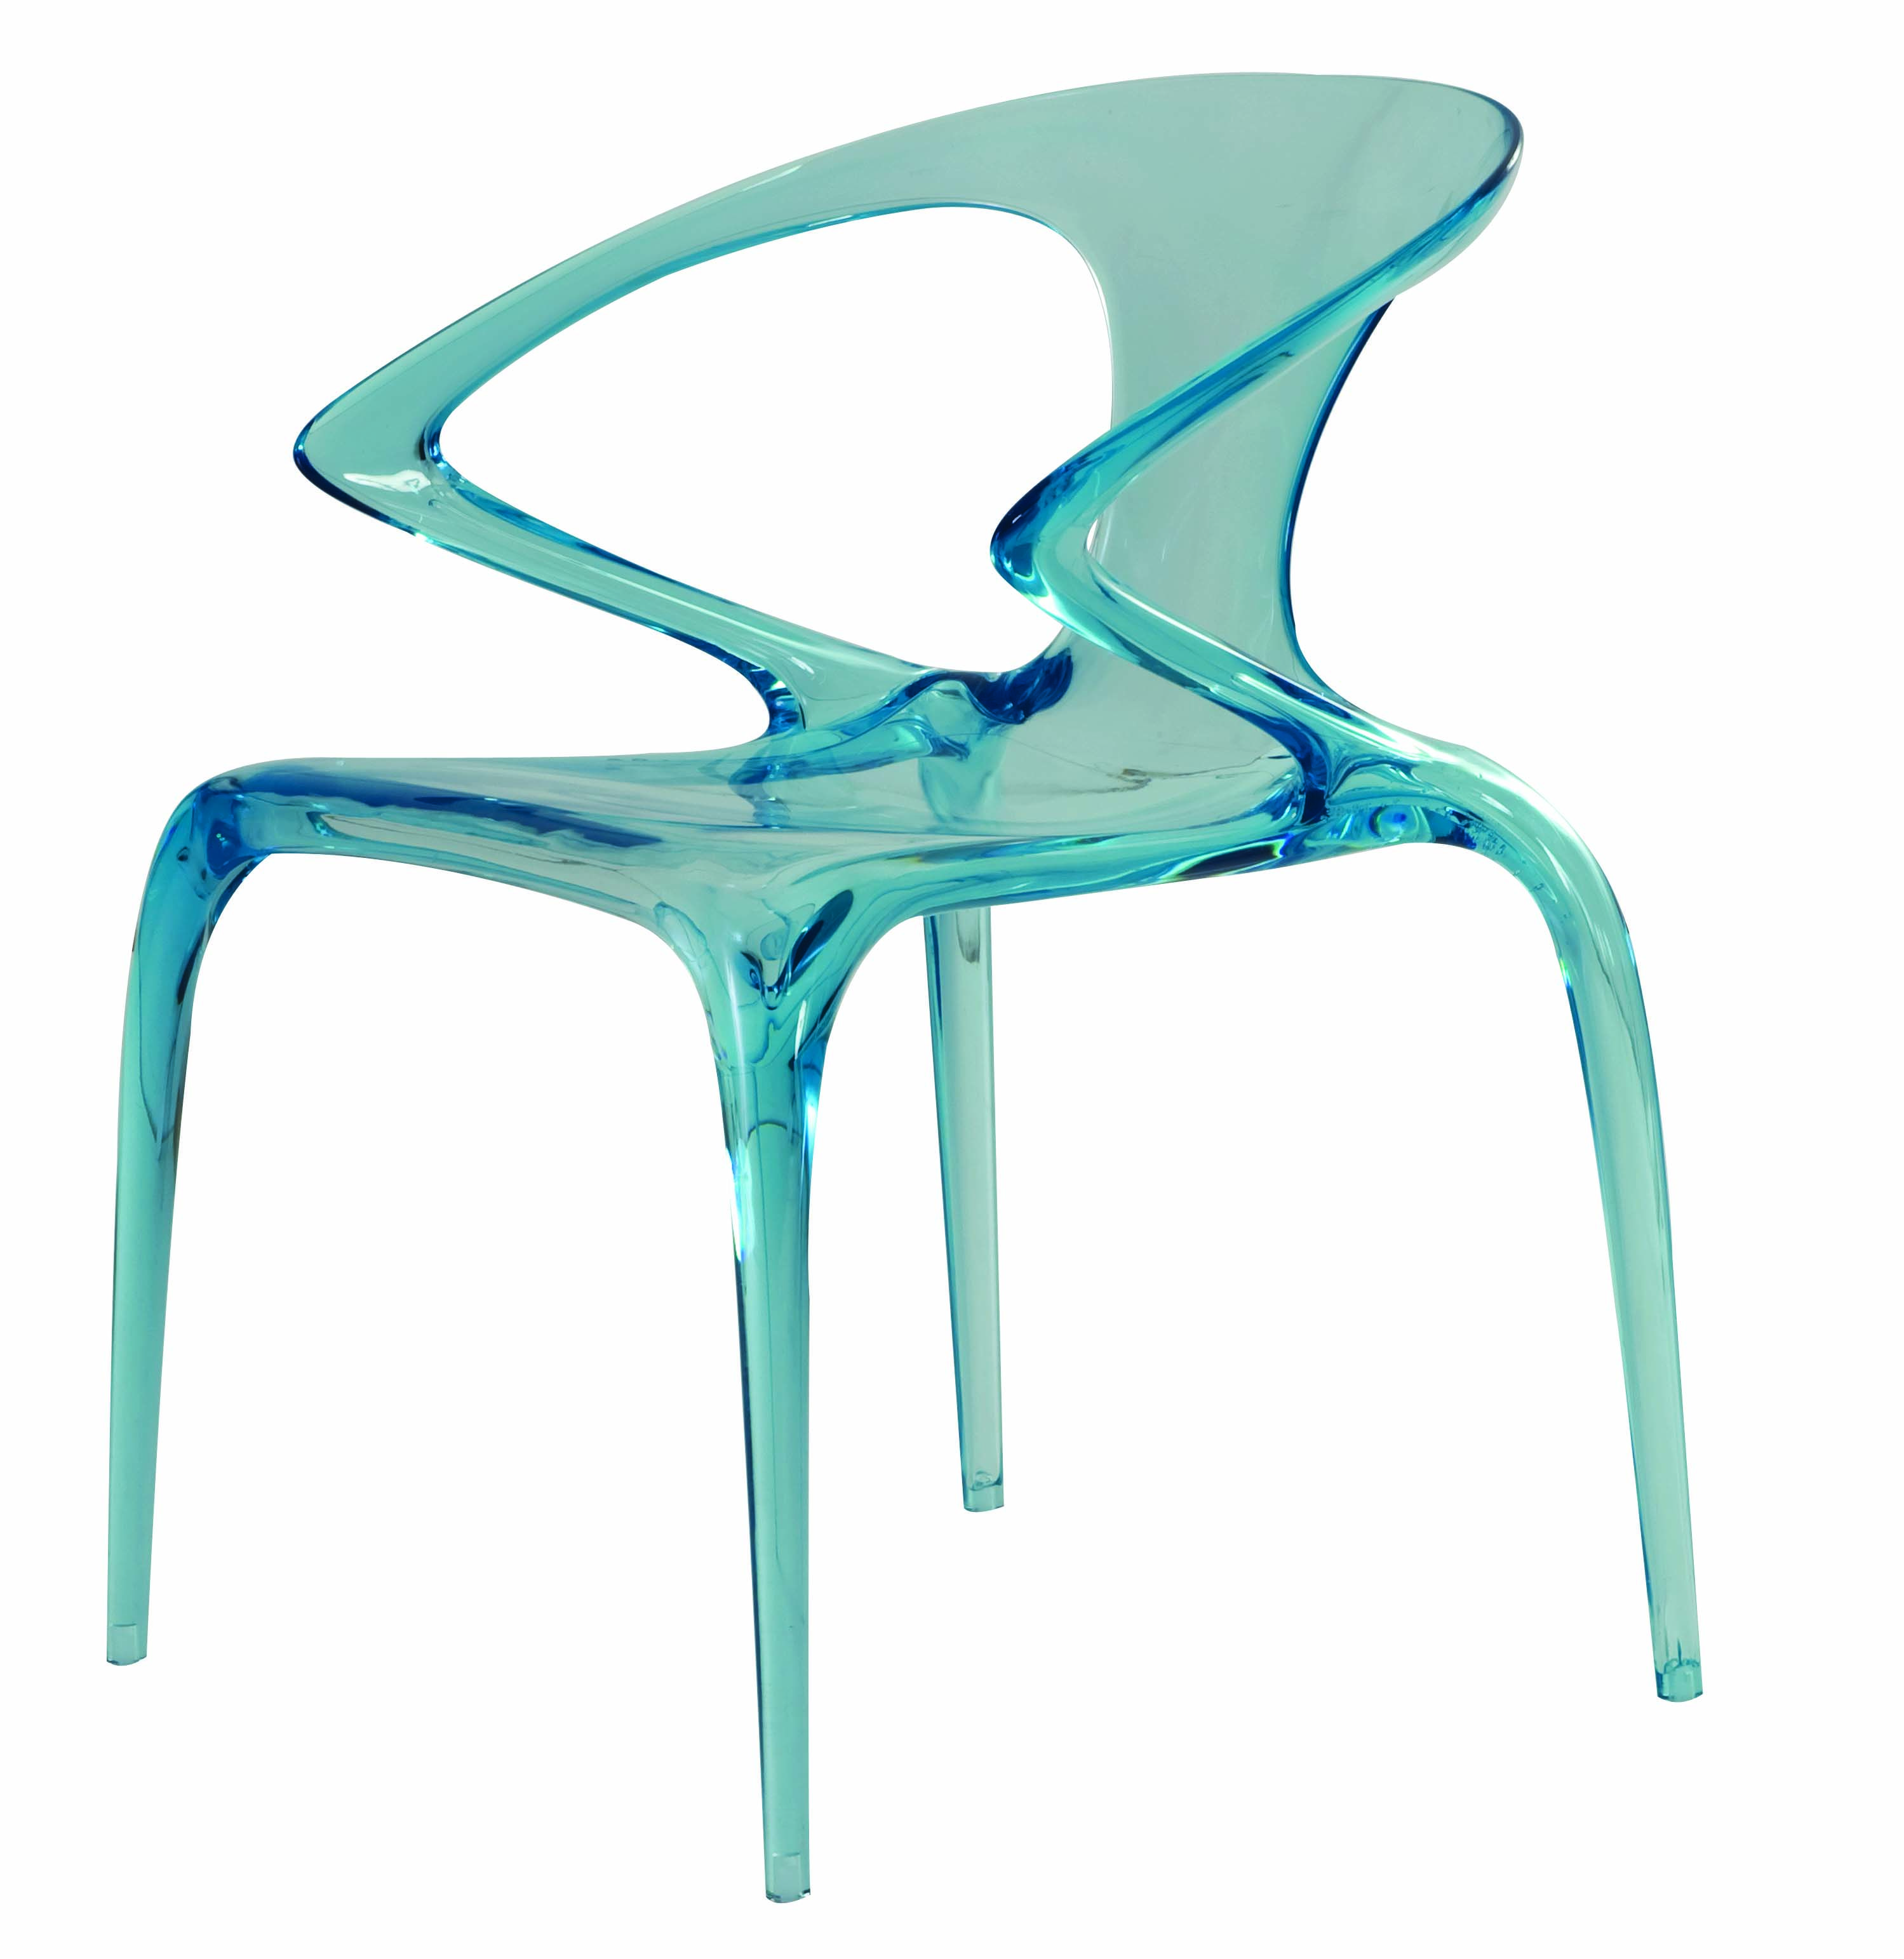 Roche Bobois | AVA chair | designed by Song Wen Zhong ...